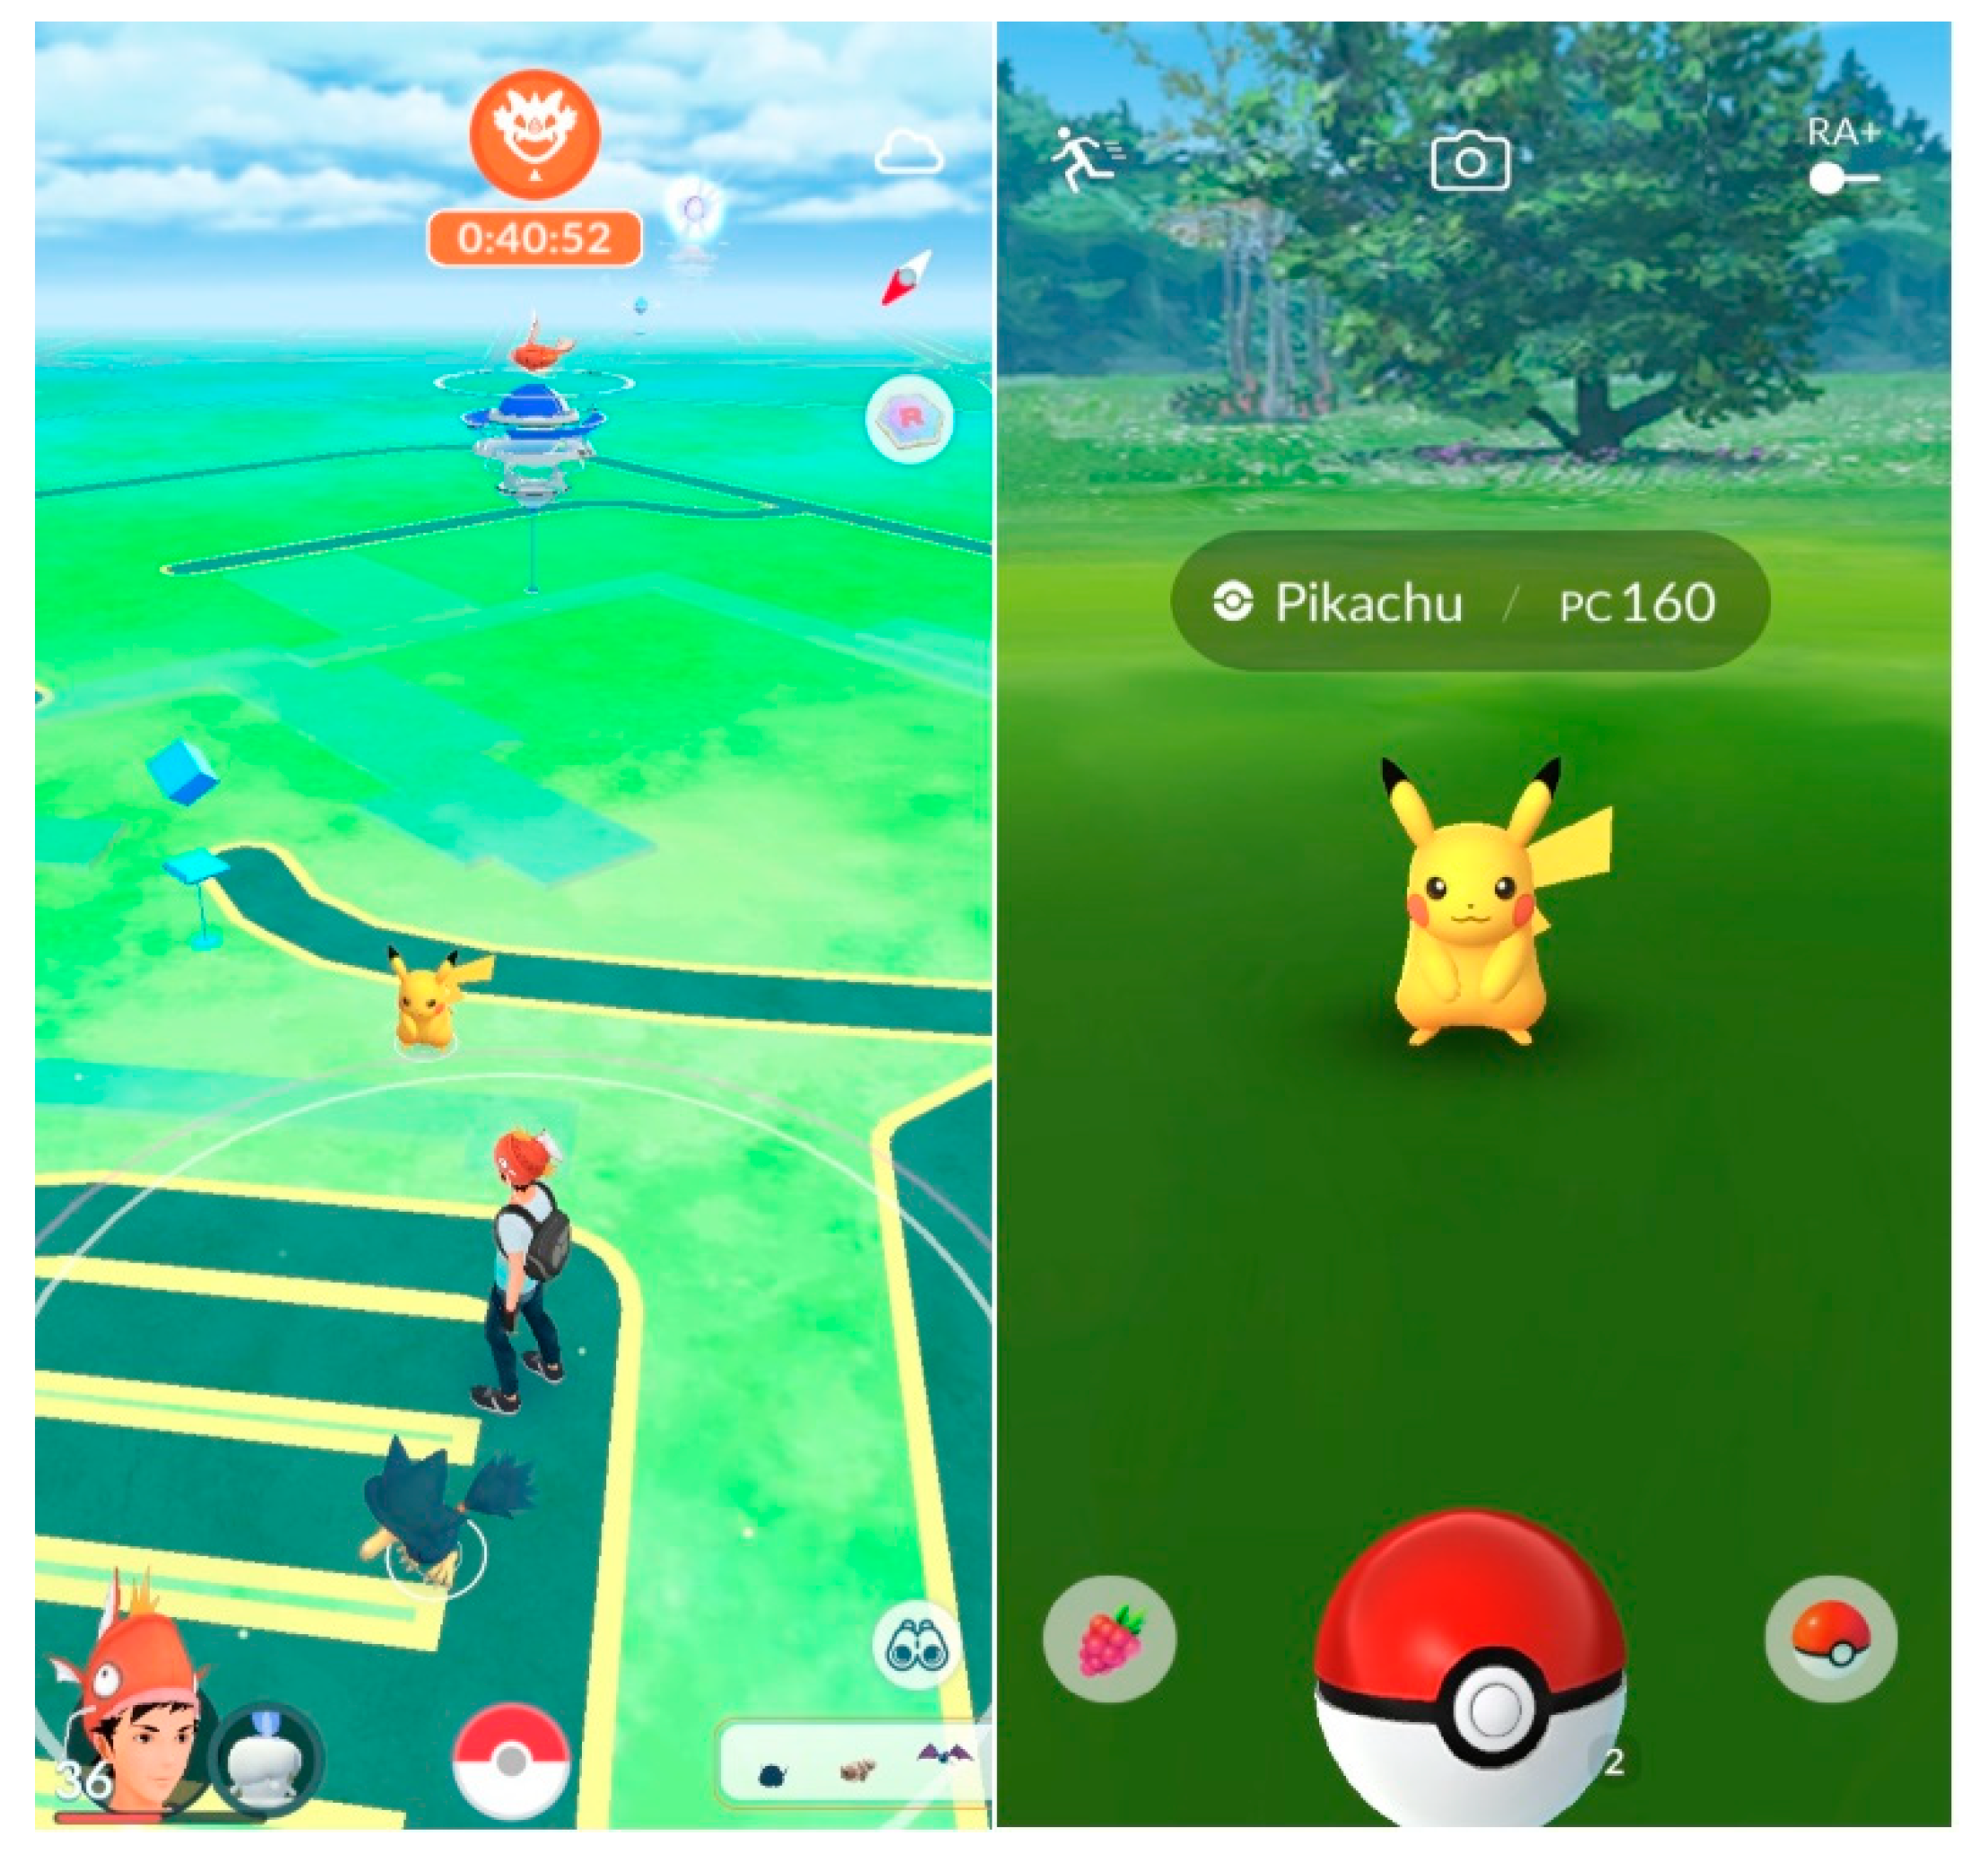 Applied Sciences | Free Full-Text | Uses and Gratifications on Augmented  Reality Games: An Examination of Pokémon Go